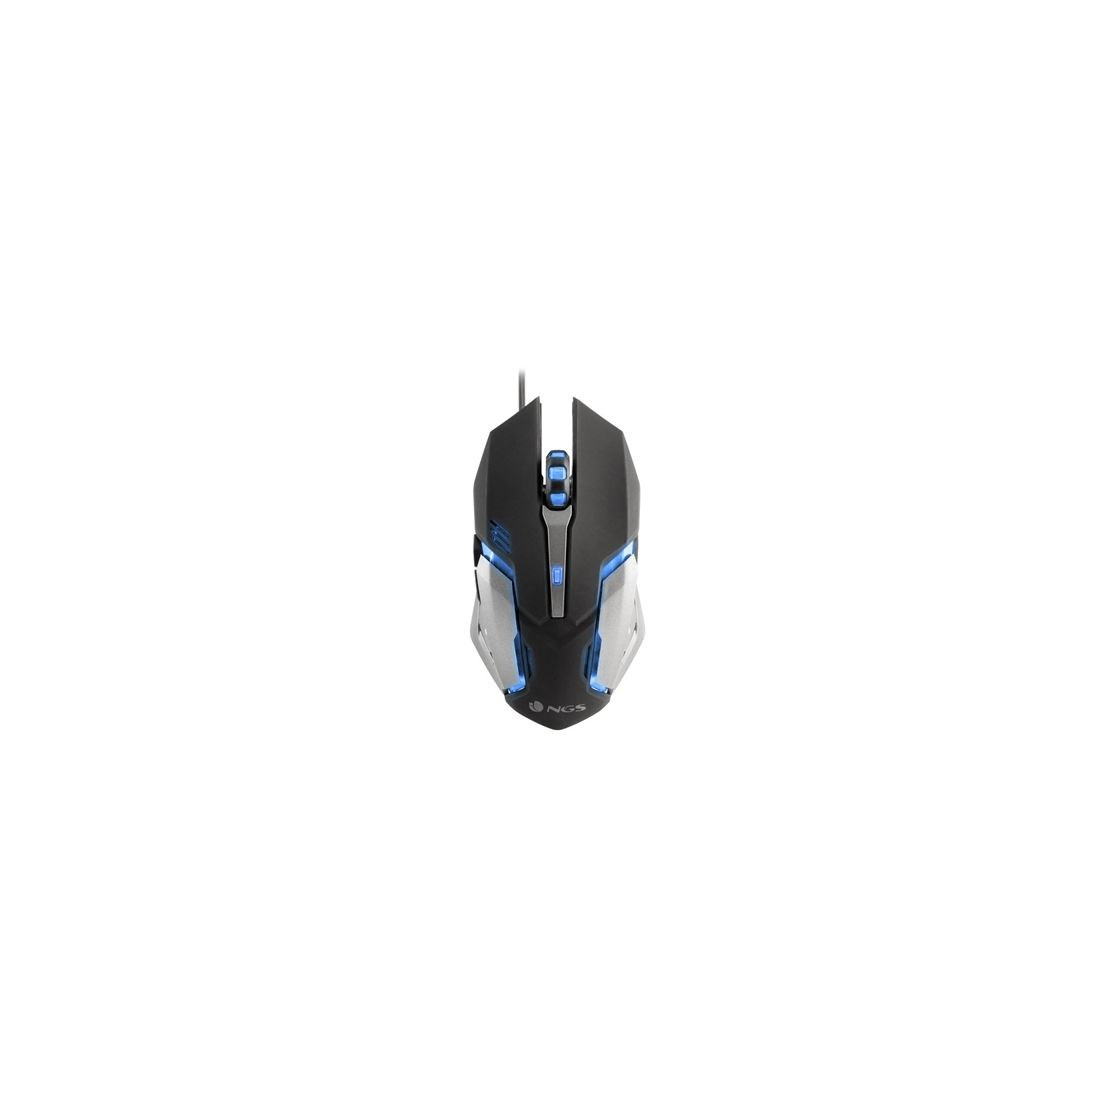 NGS Raton Gaming GMX 100 7 Colores LED 2200 DPI